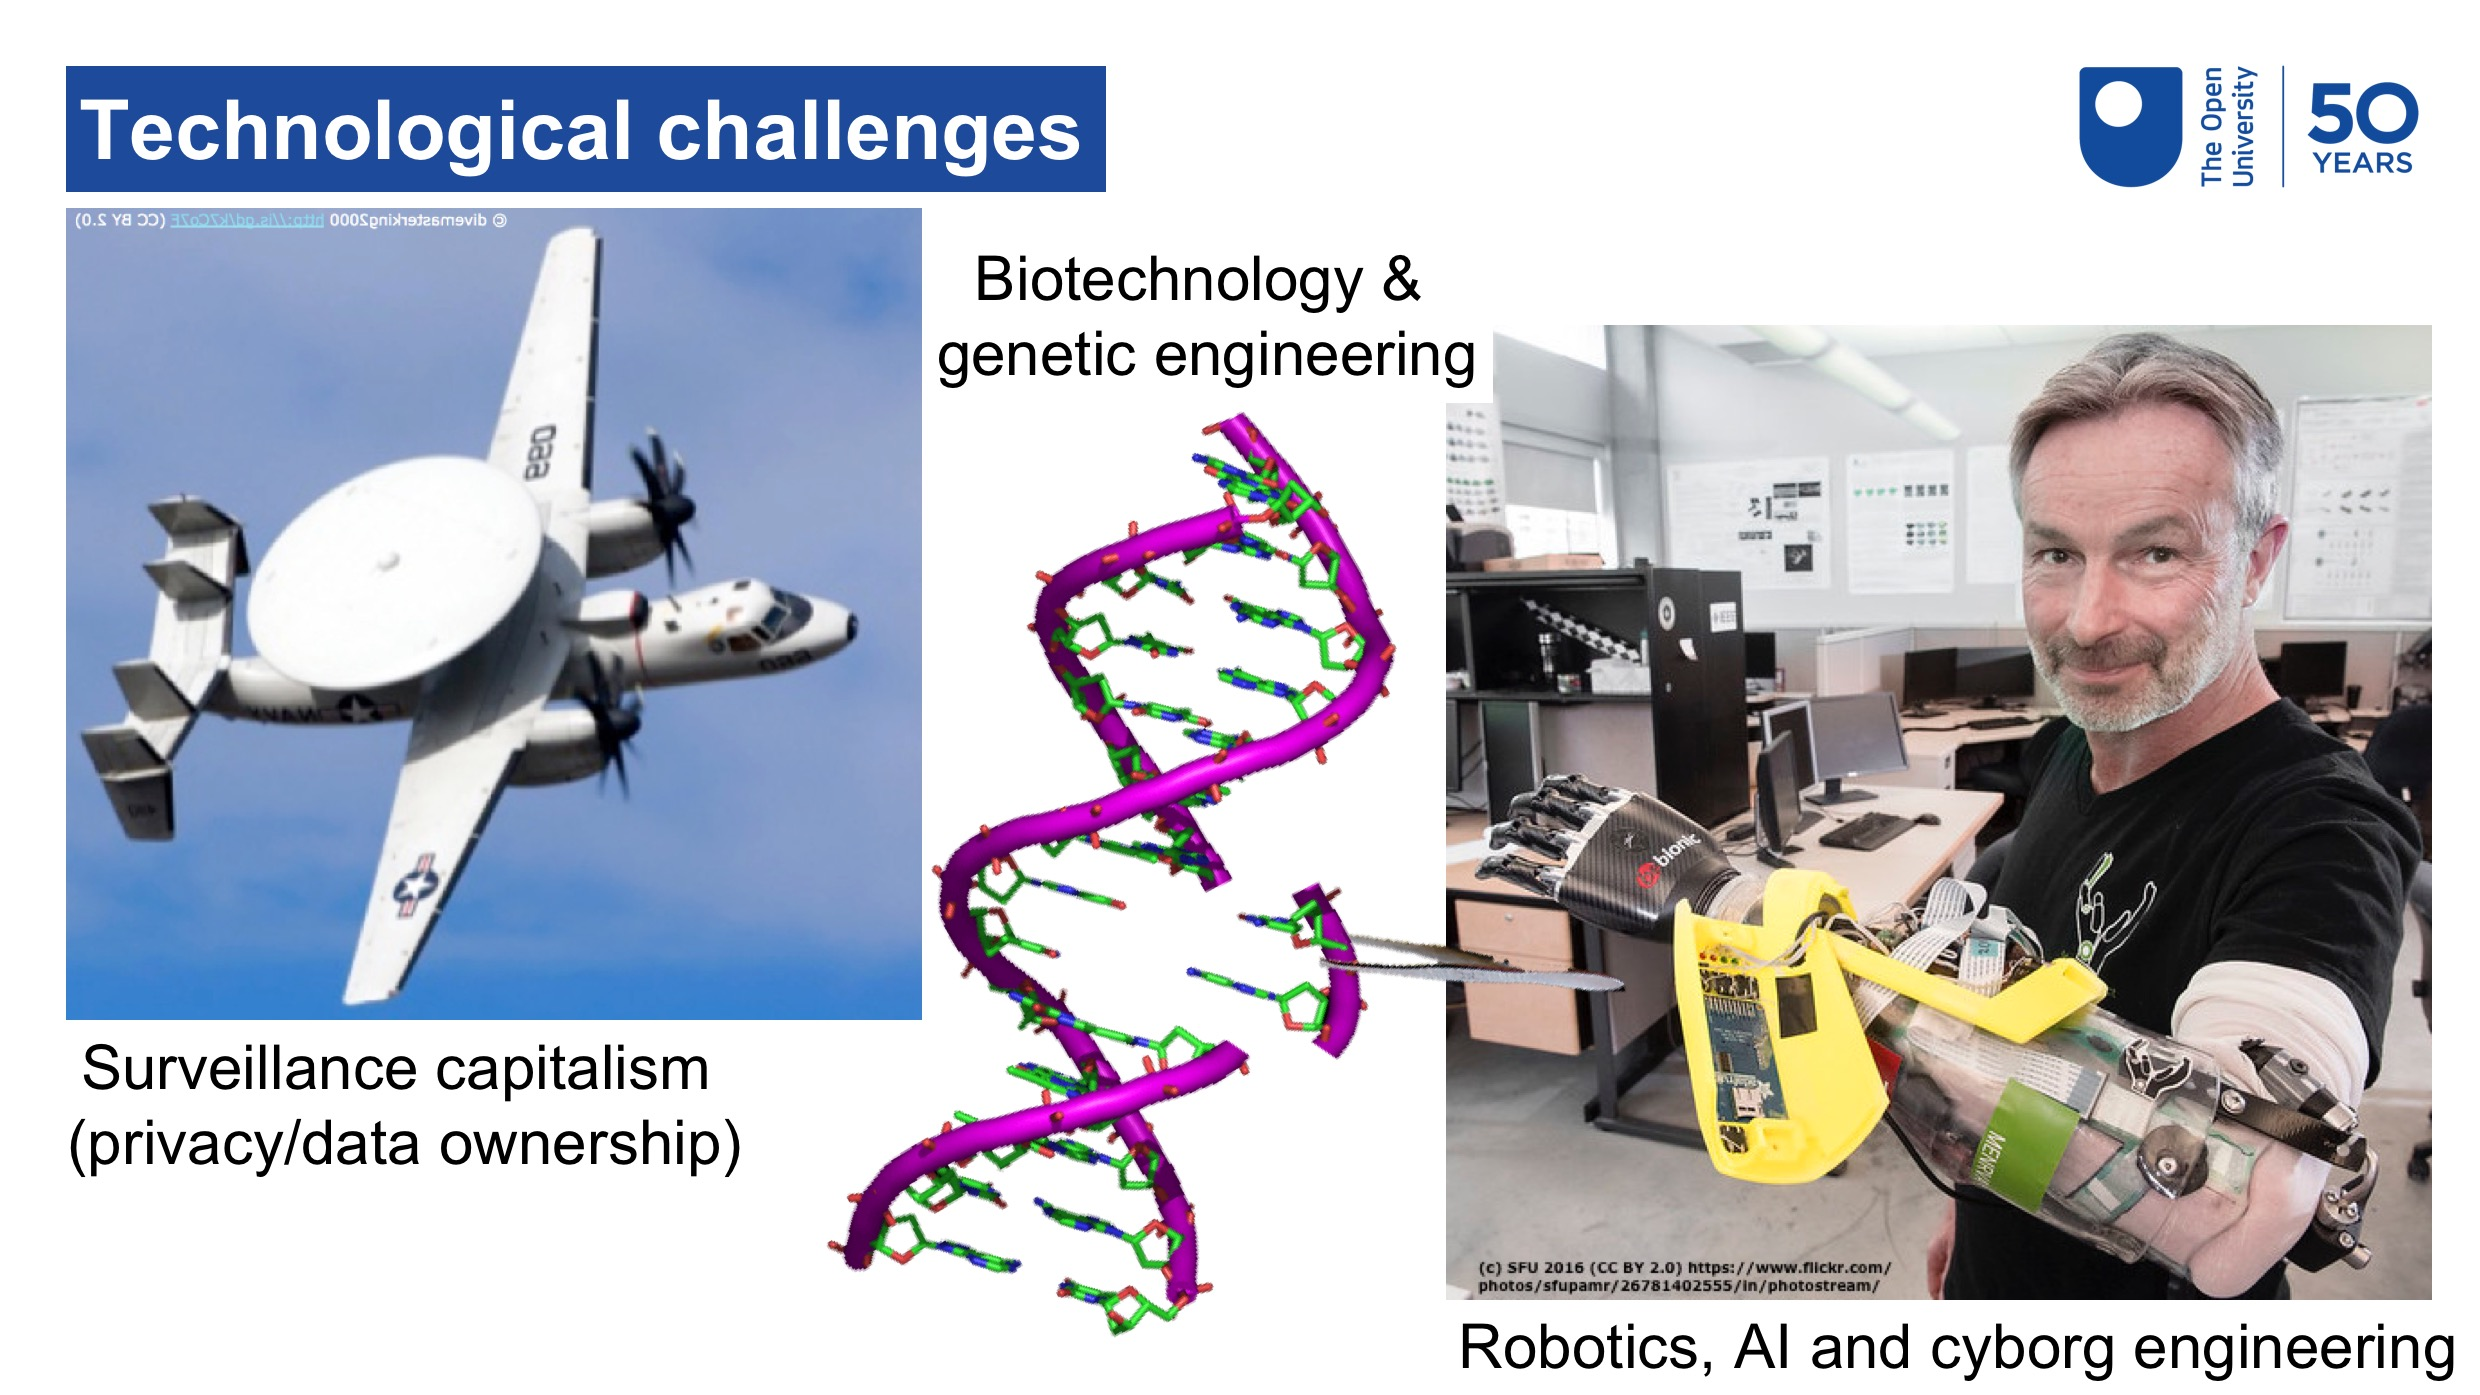 Images representing surveillance capitalism, biotechnology and genetic engineering, and robotics, AI and cyborg engineering